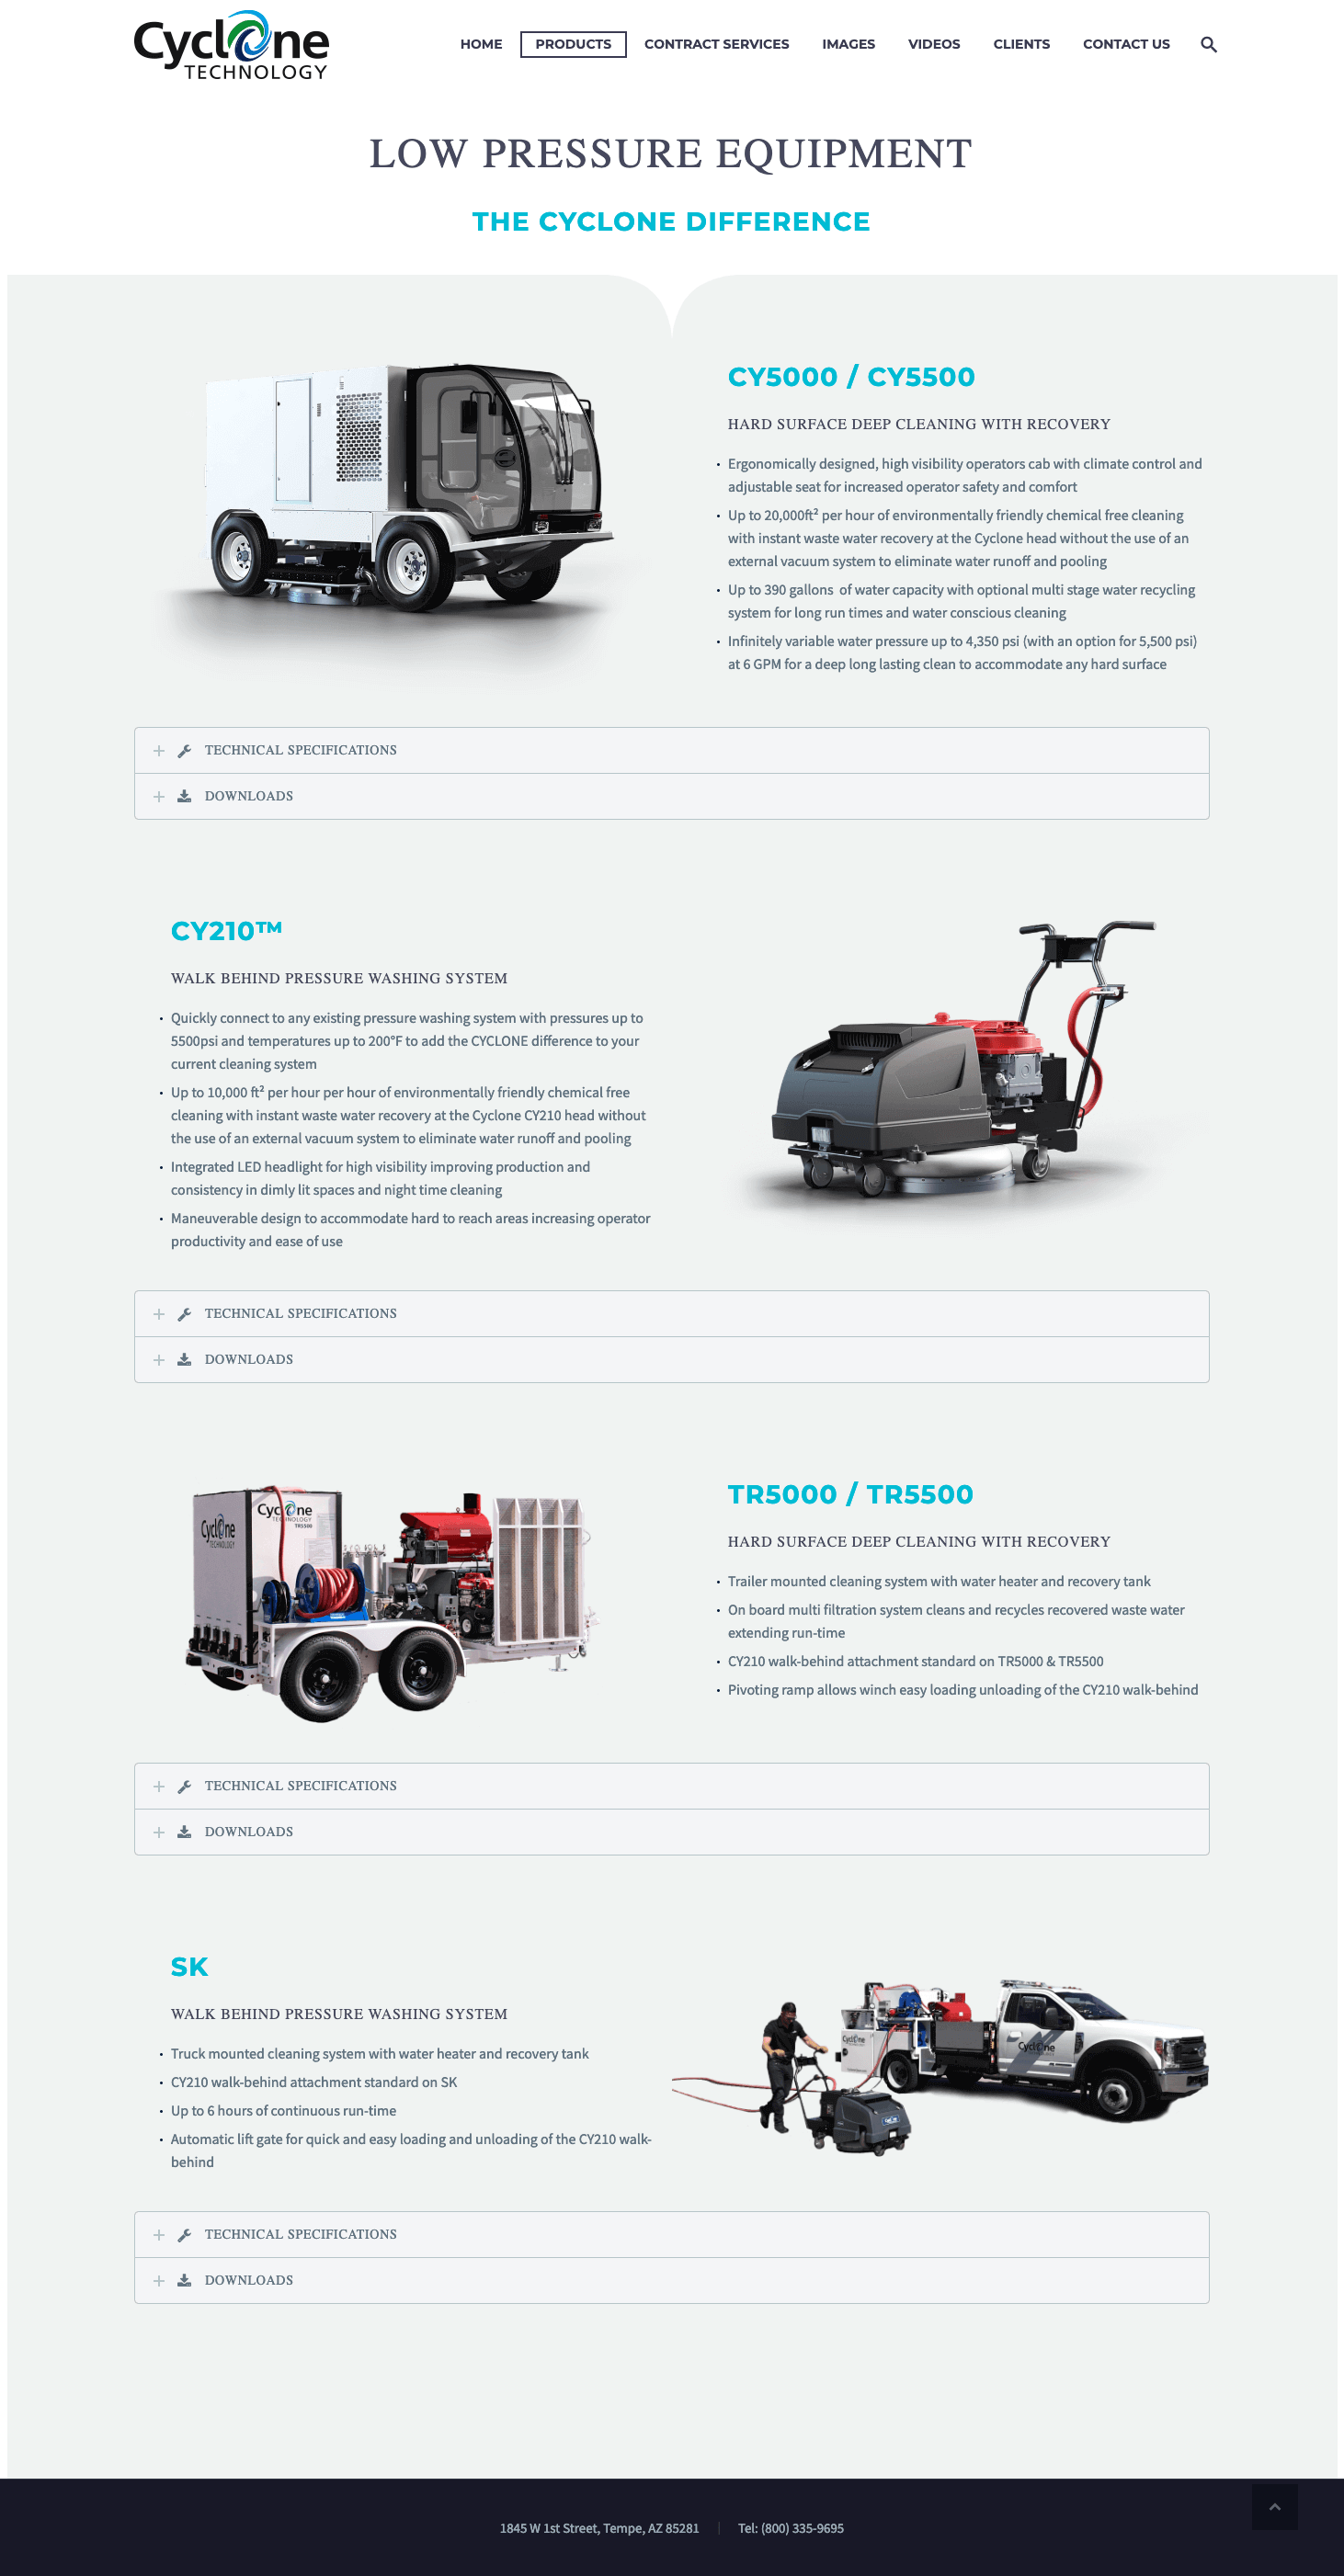 cyclone-clean-technology-low-pressue-website-design